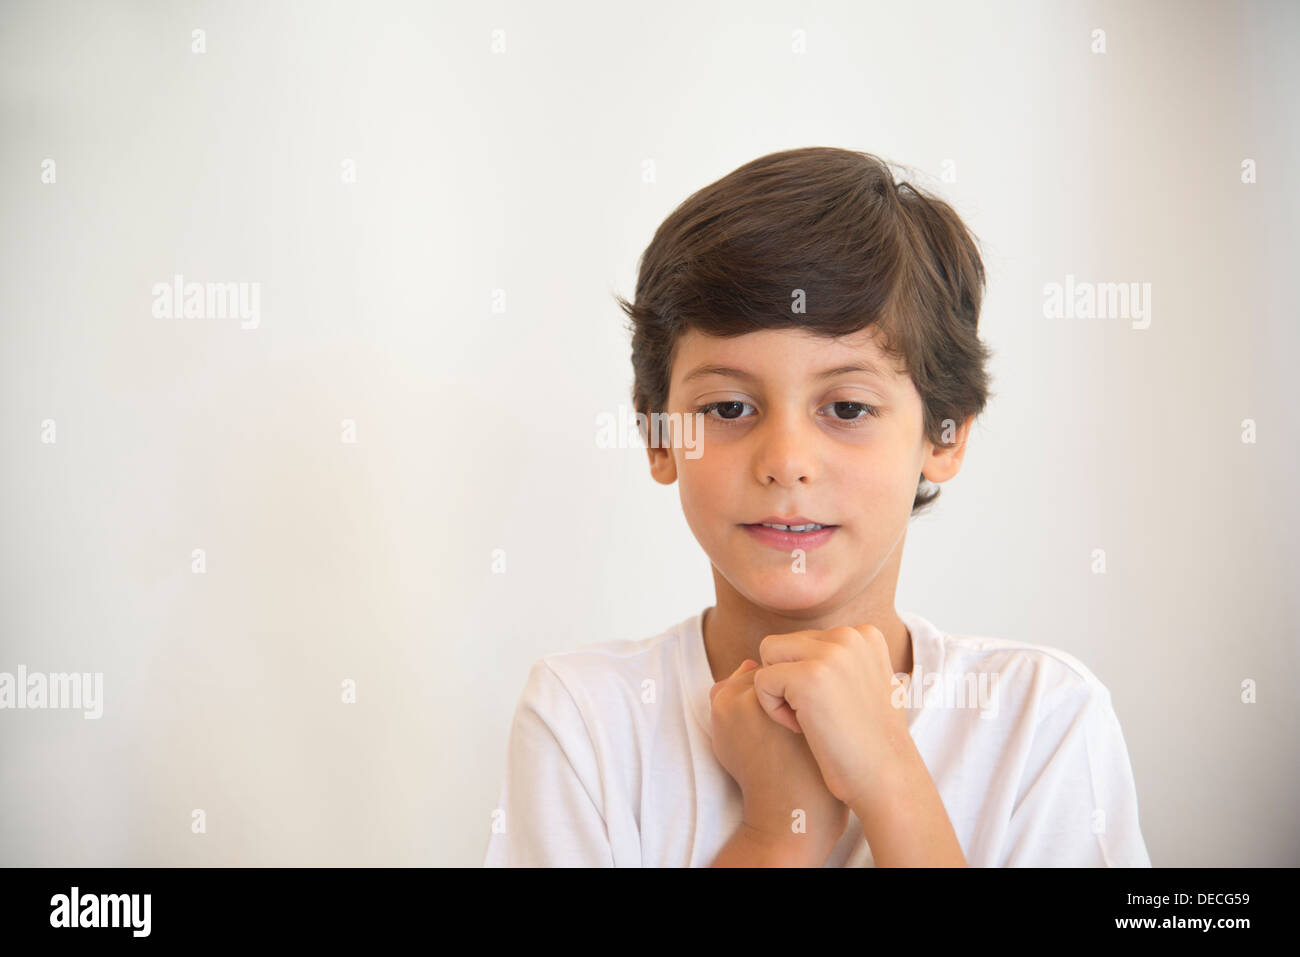 boy, kid, schoolboy, expecting, expectation, excitement, waiting for, surprise, childish,  dreaming, waiting for, - Stock Image